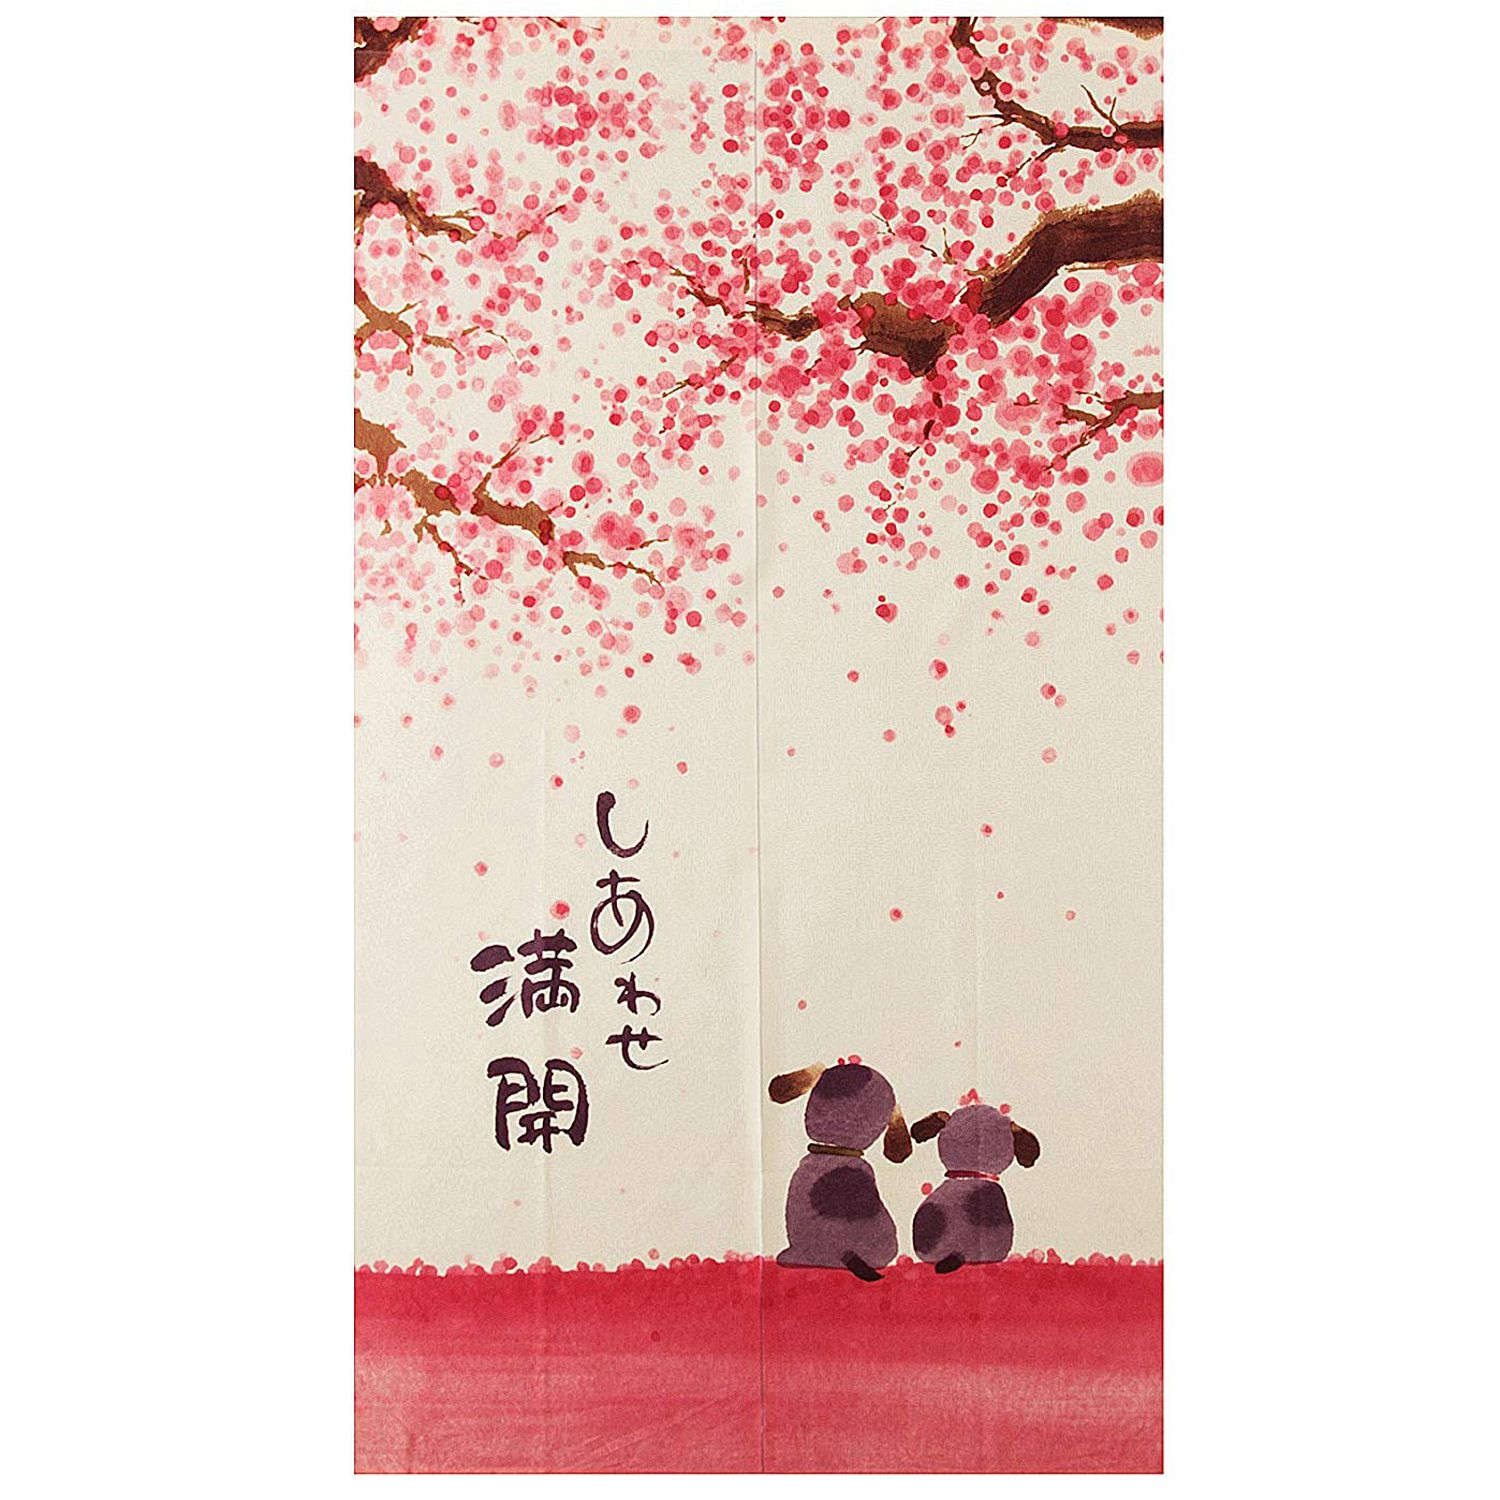 Japanese Style Doorway Curtain 85X150Cm Happy Dogs Cherry Blossom